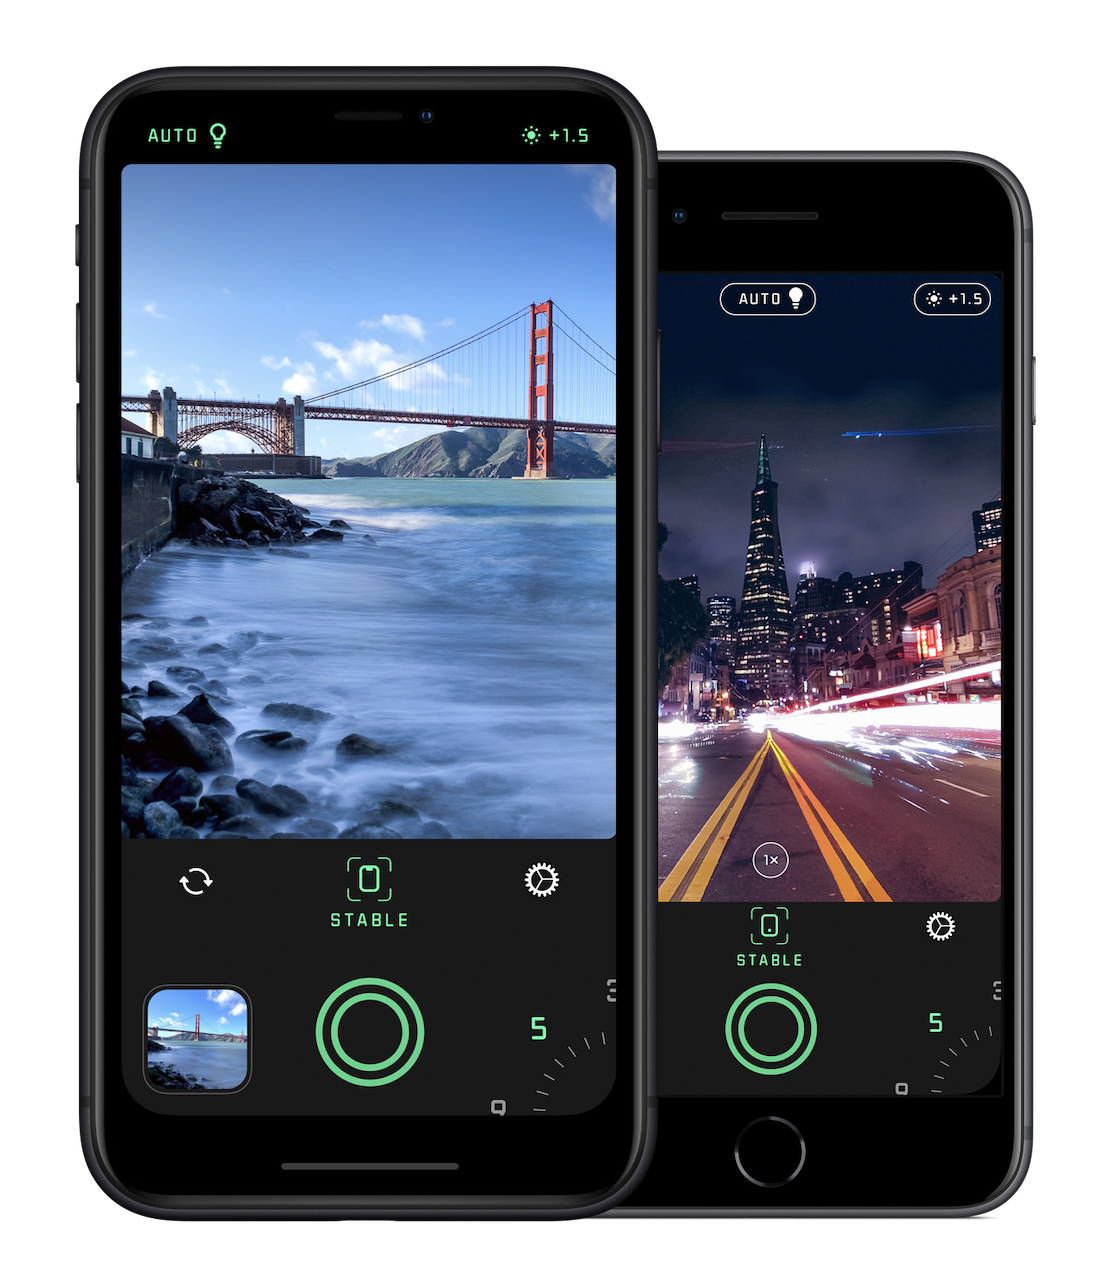 Spectre Cam Enables Long Exposure Shots on iPhone Using AI